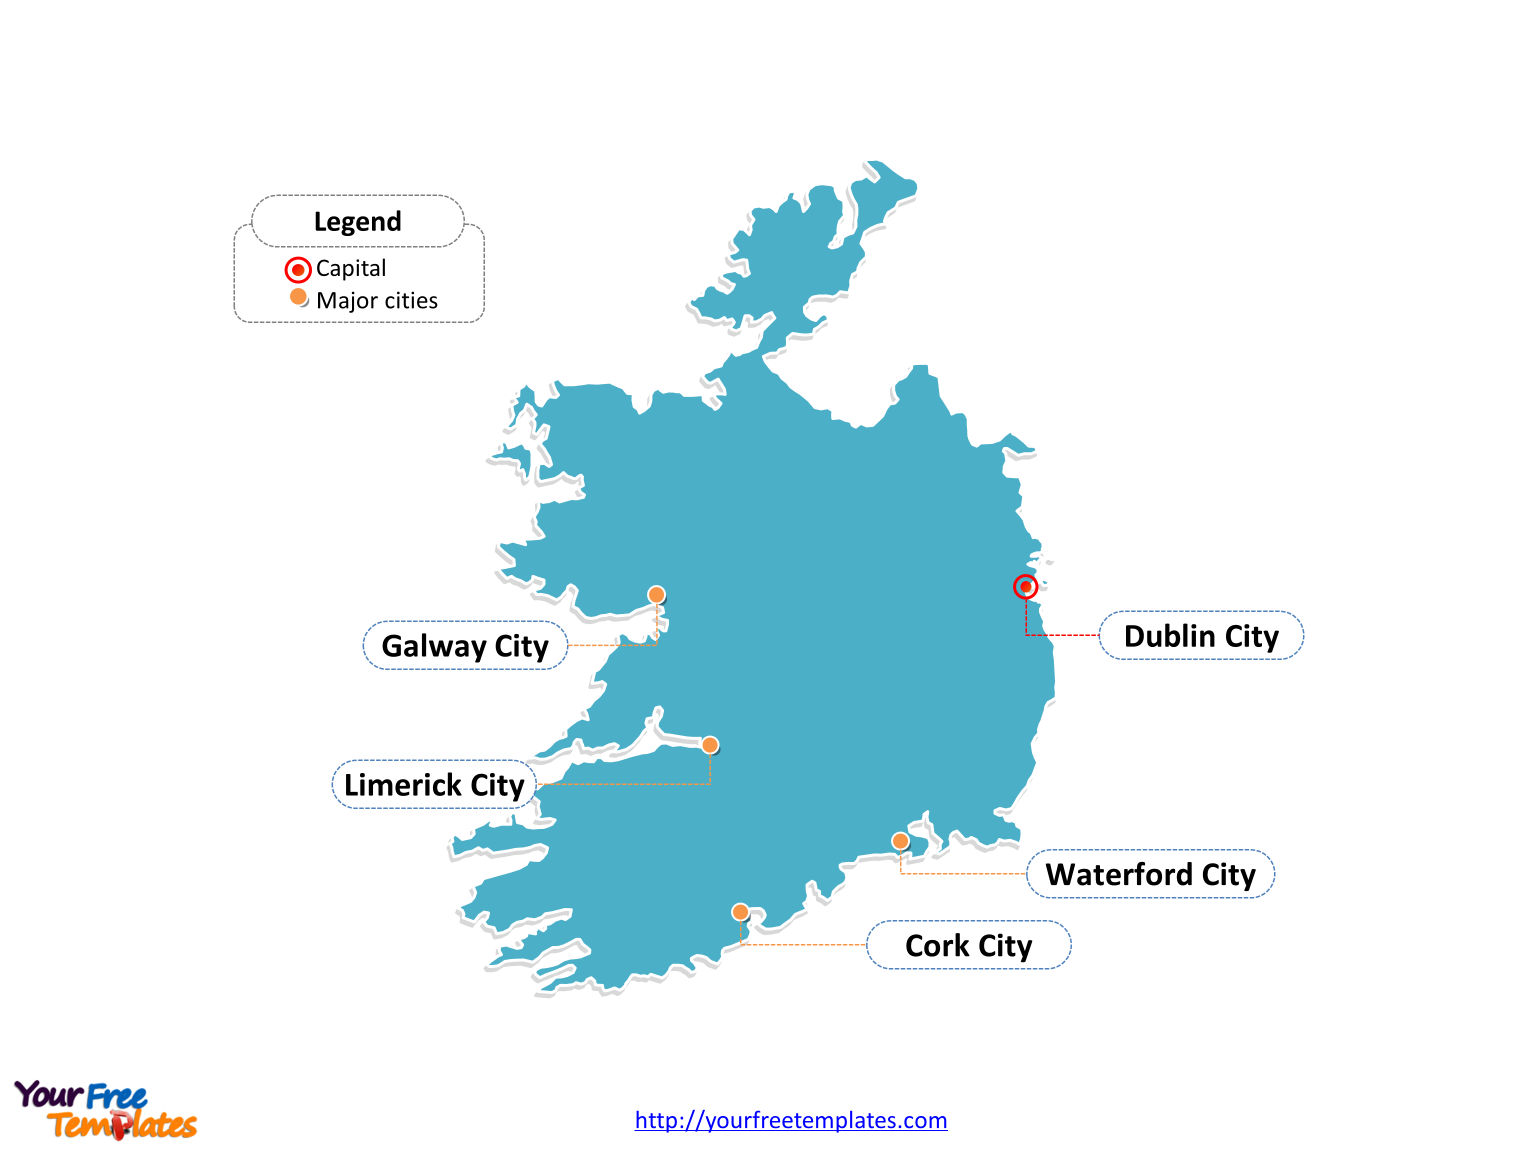 Republic of Ireland Outline map labeled with cities